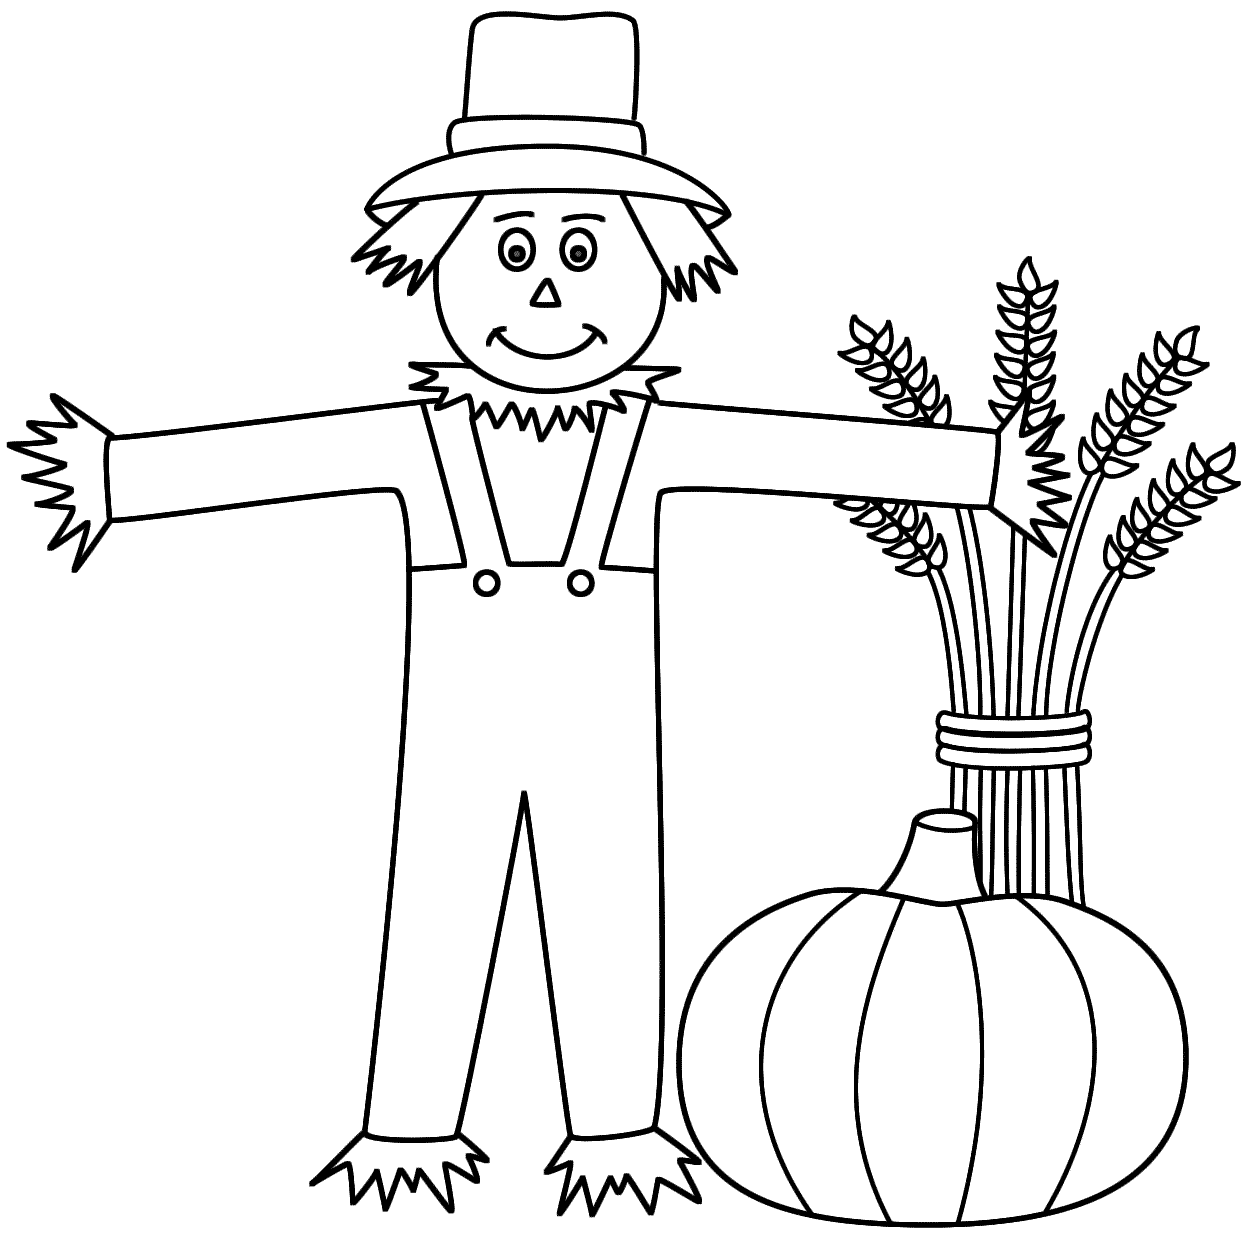 Scarecrow coloring pages to download and print for free